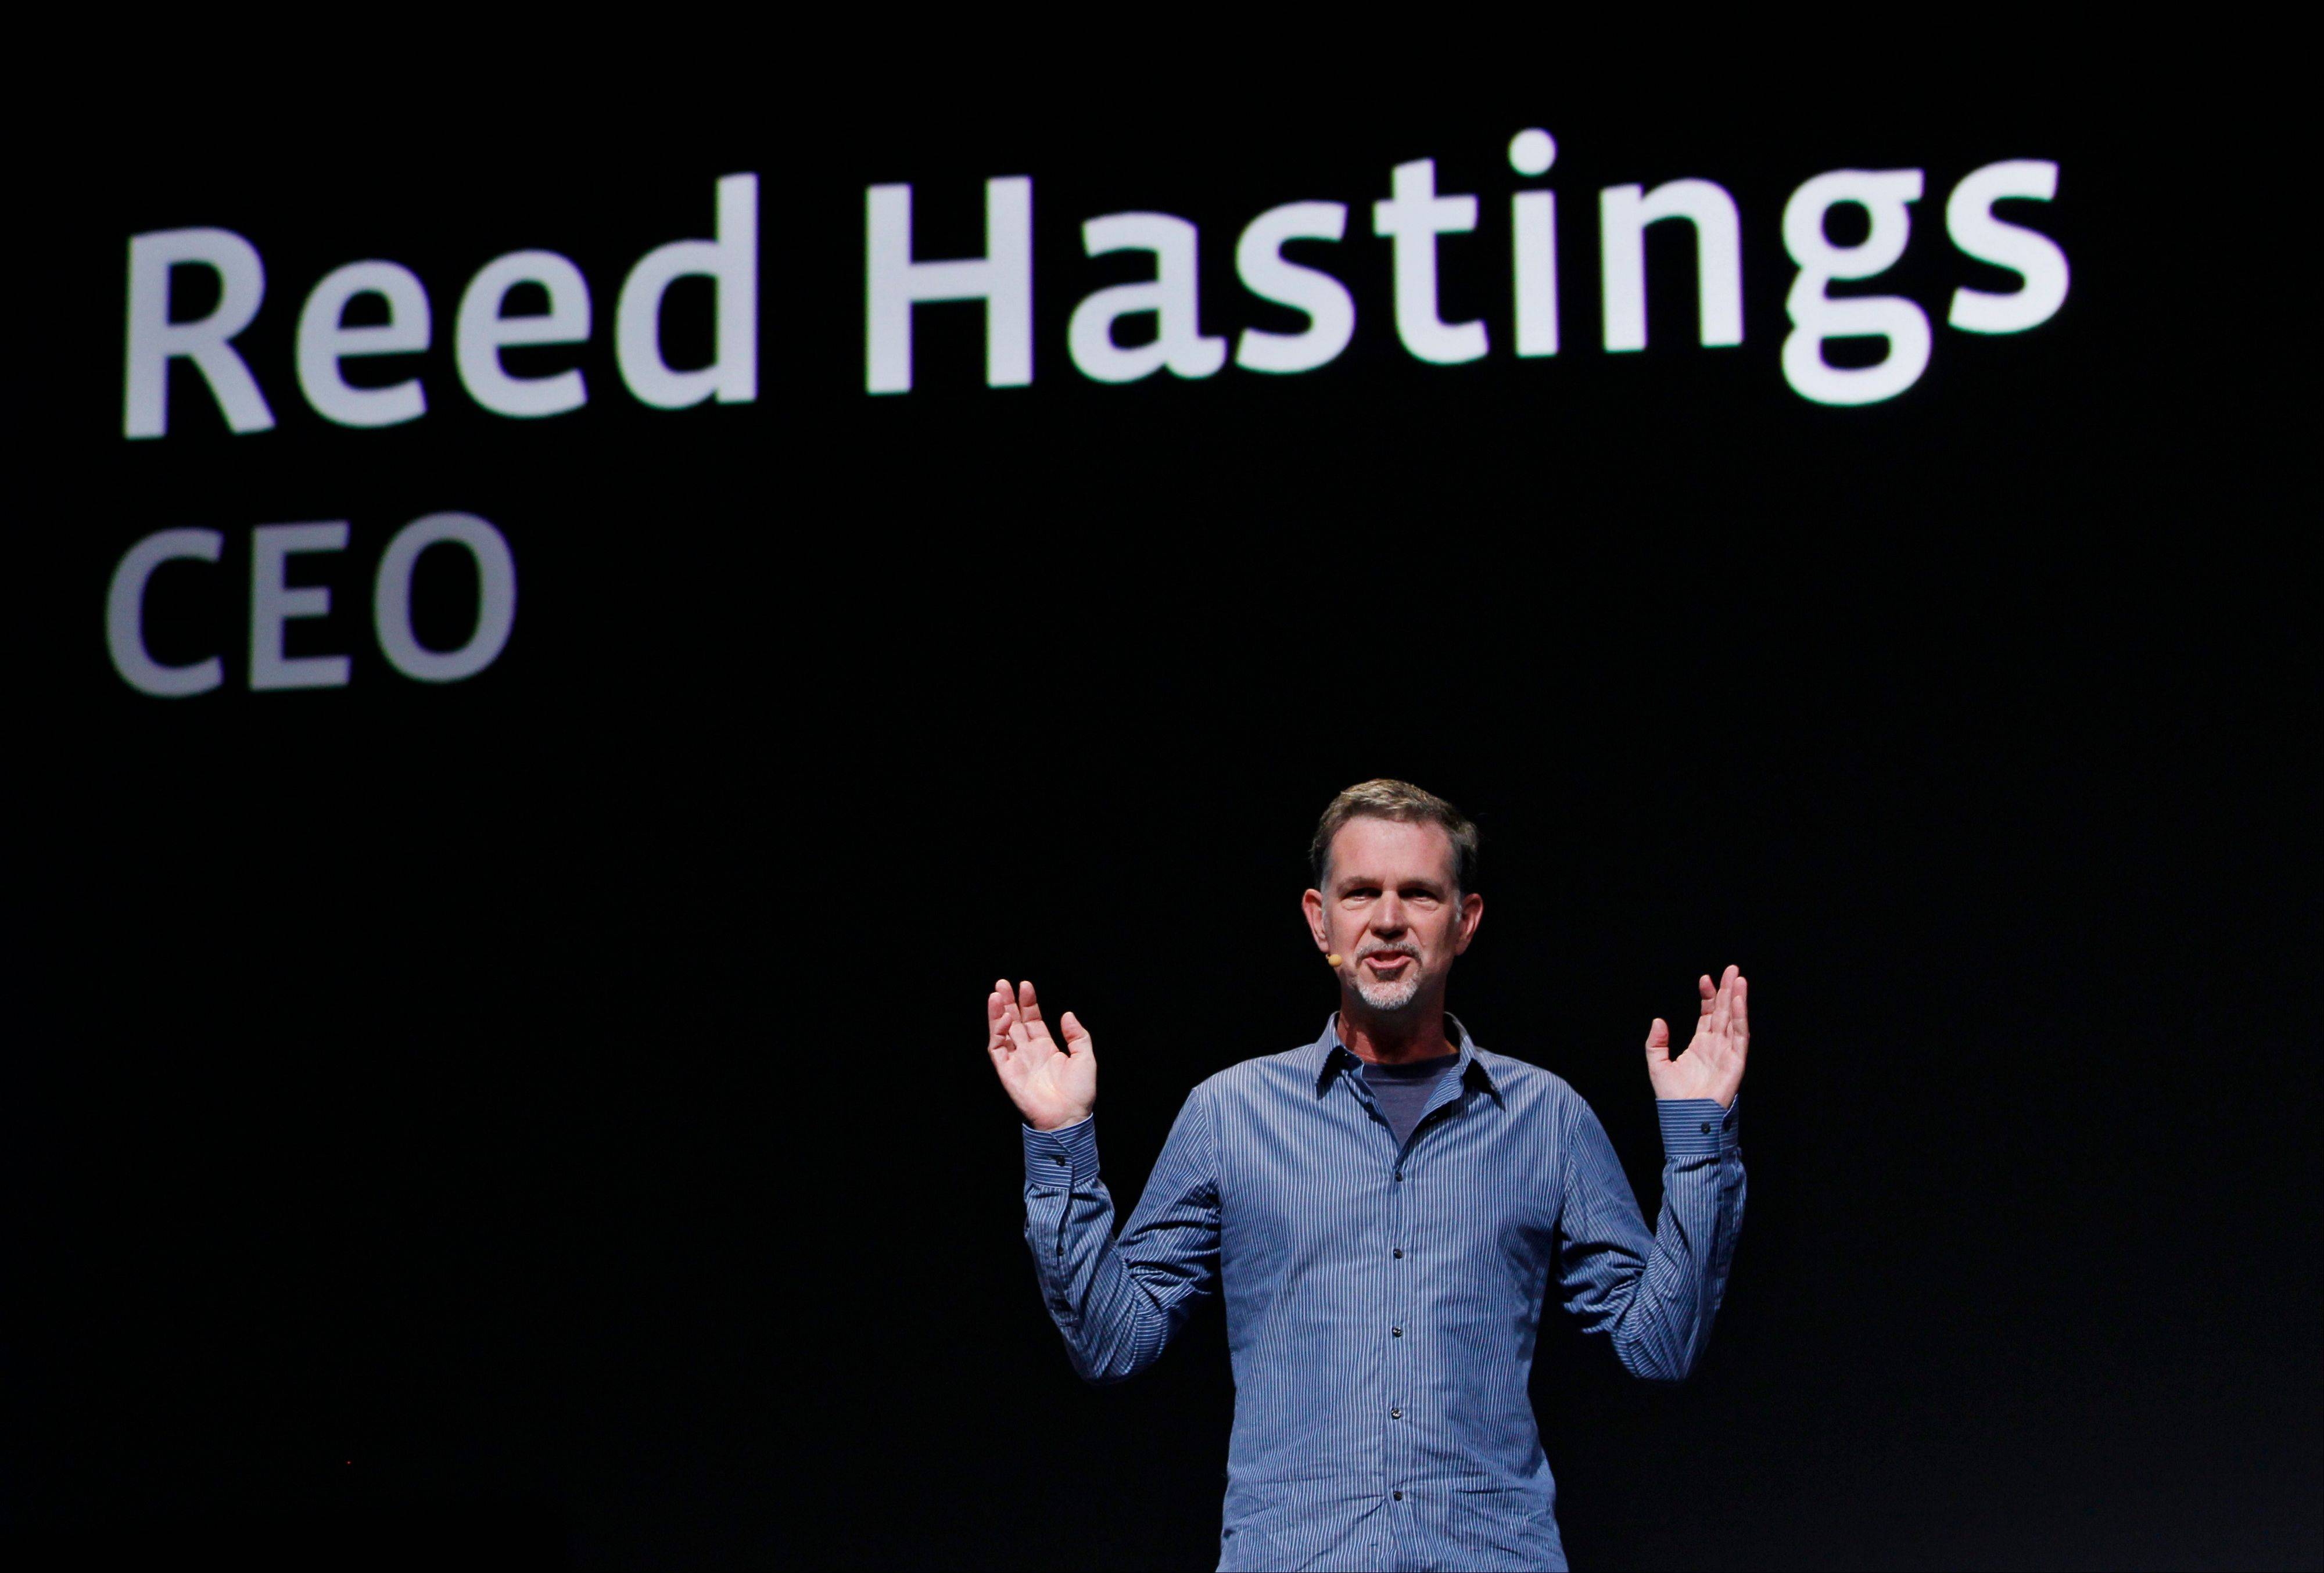 In this Sept. 22, 2011 file photo, Netflix CEO Reed Hastings gestures during the Facebook f/8 conference in San Francisco. He will host a video chat discussing the company's quarterly results on July 22, 2013.